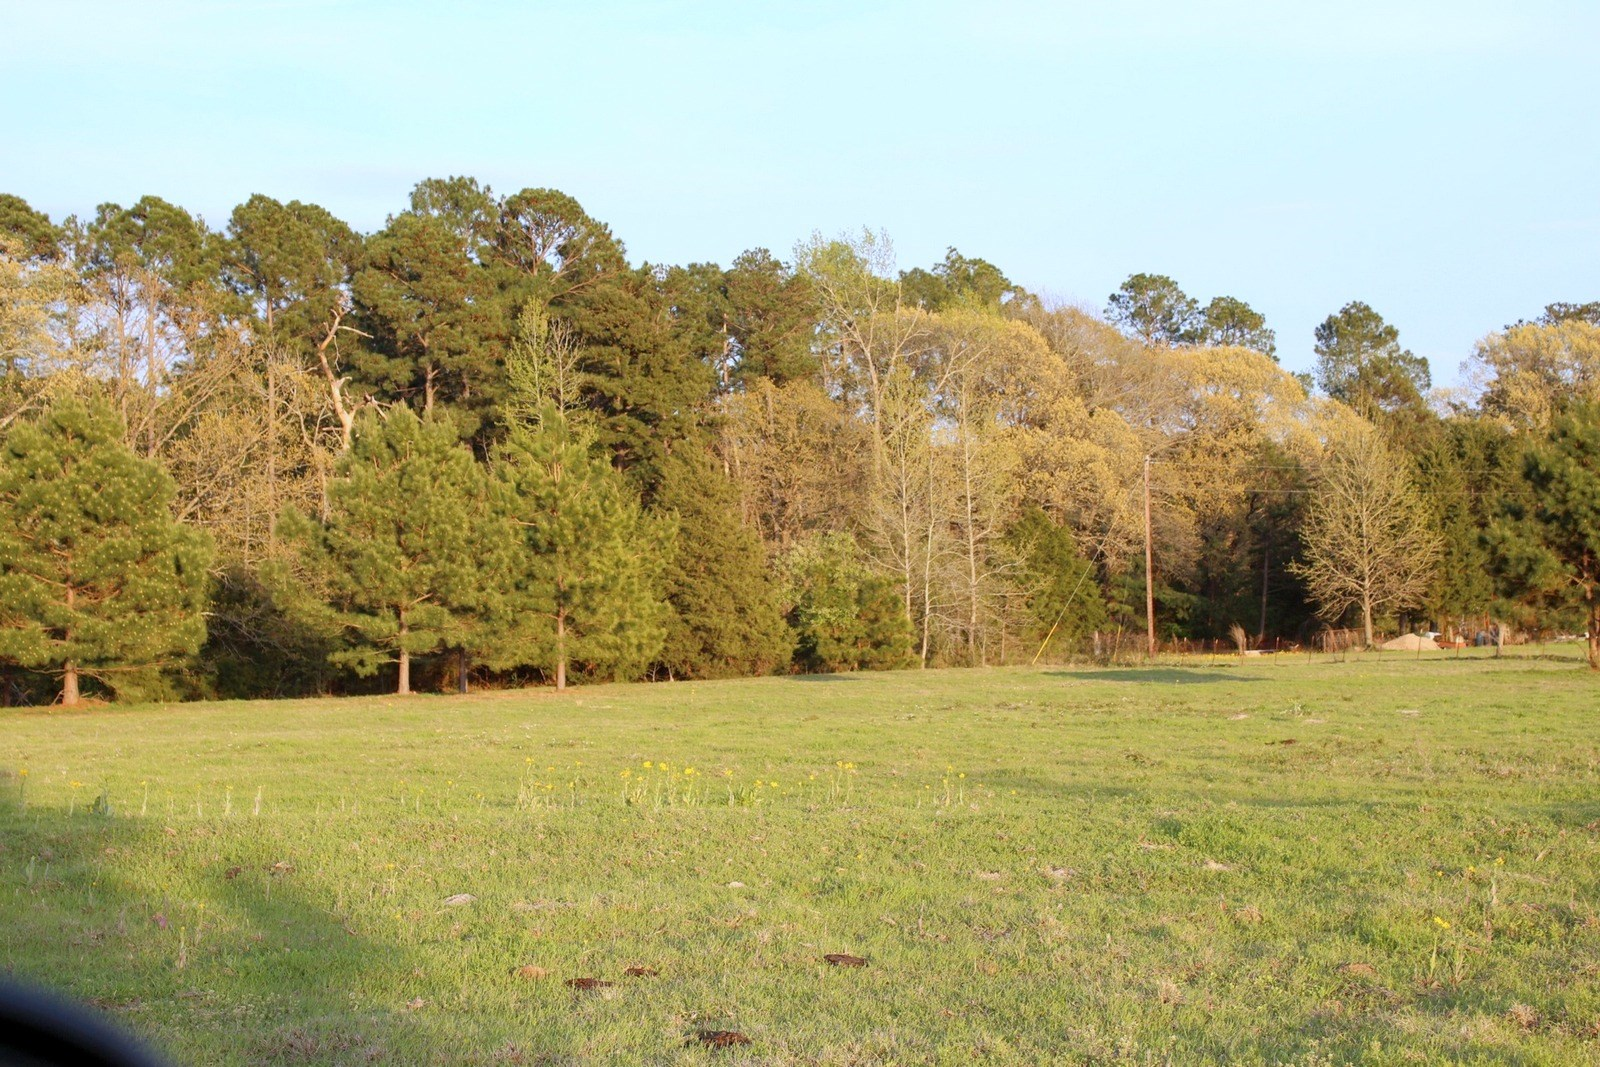 LAND FOR SALE EAST TEXAS - WOOD COUNTY ACREAGE - EAST OF DFW